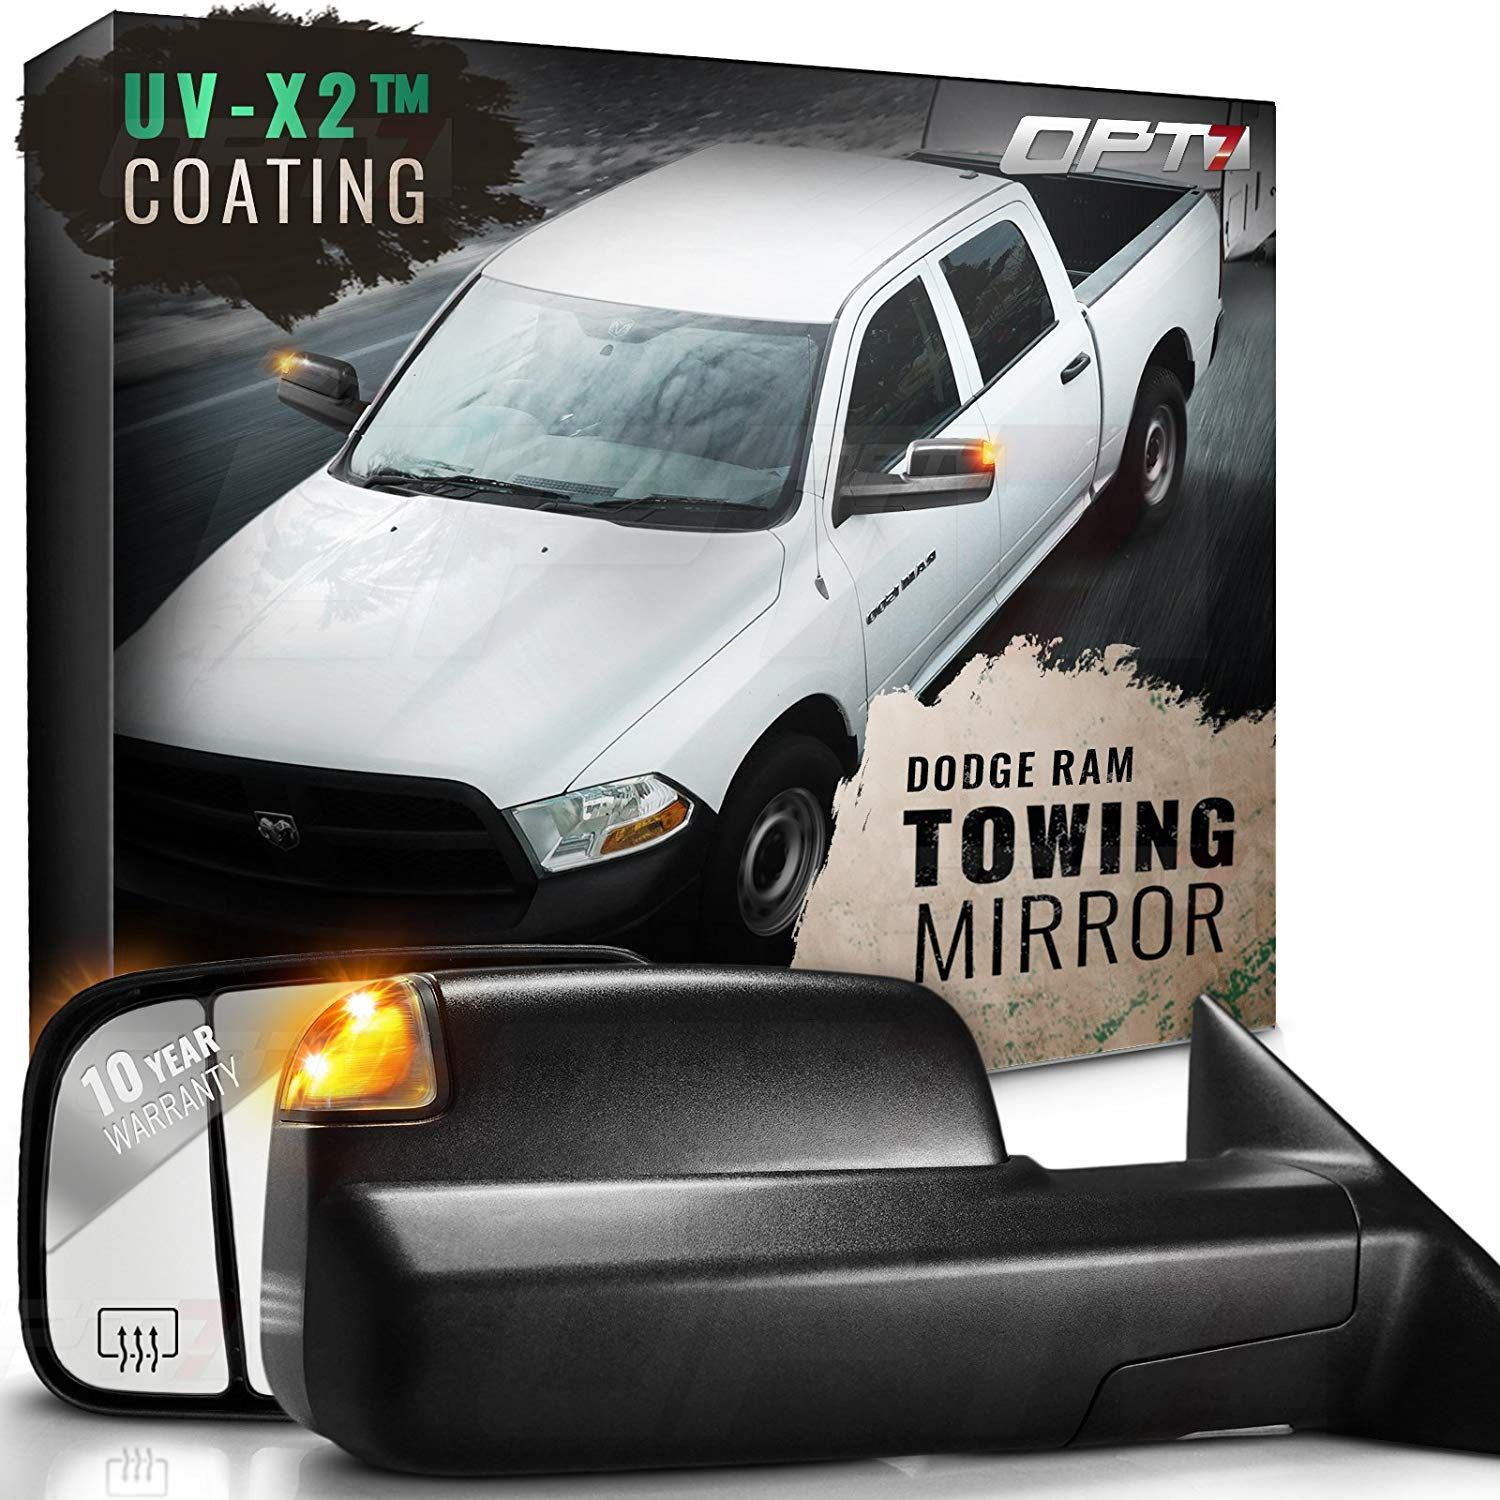 Opt7 Deluxe Pair Truck Towing Trailer Mirrors For 2009 2012 Dodge Ram 1500 2500 3500 Powered Heated Turn Signals Dodge Ram 2012 Dodge Ram 1500 Towing Mirrors